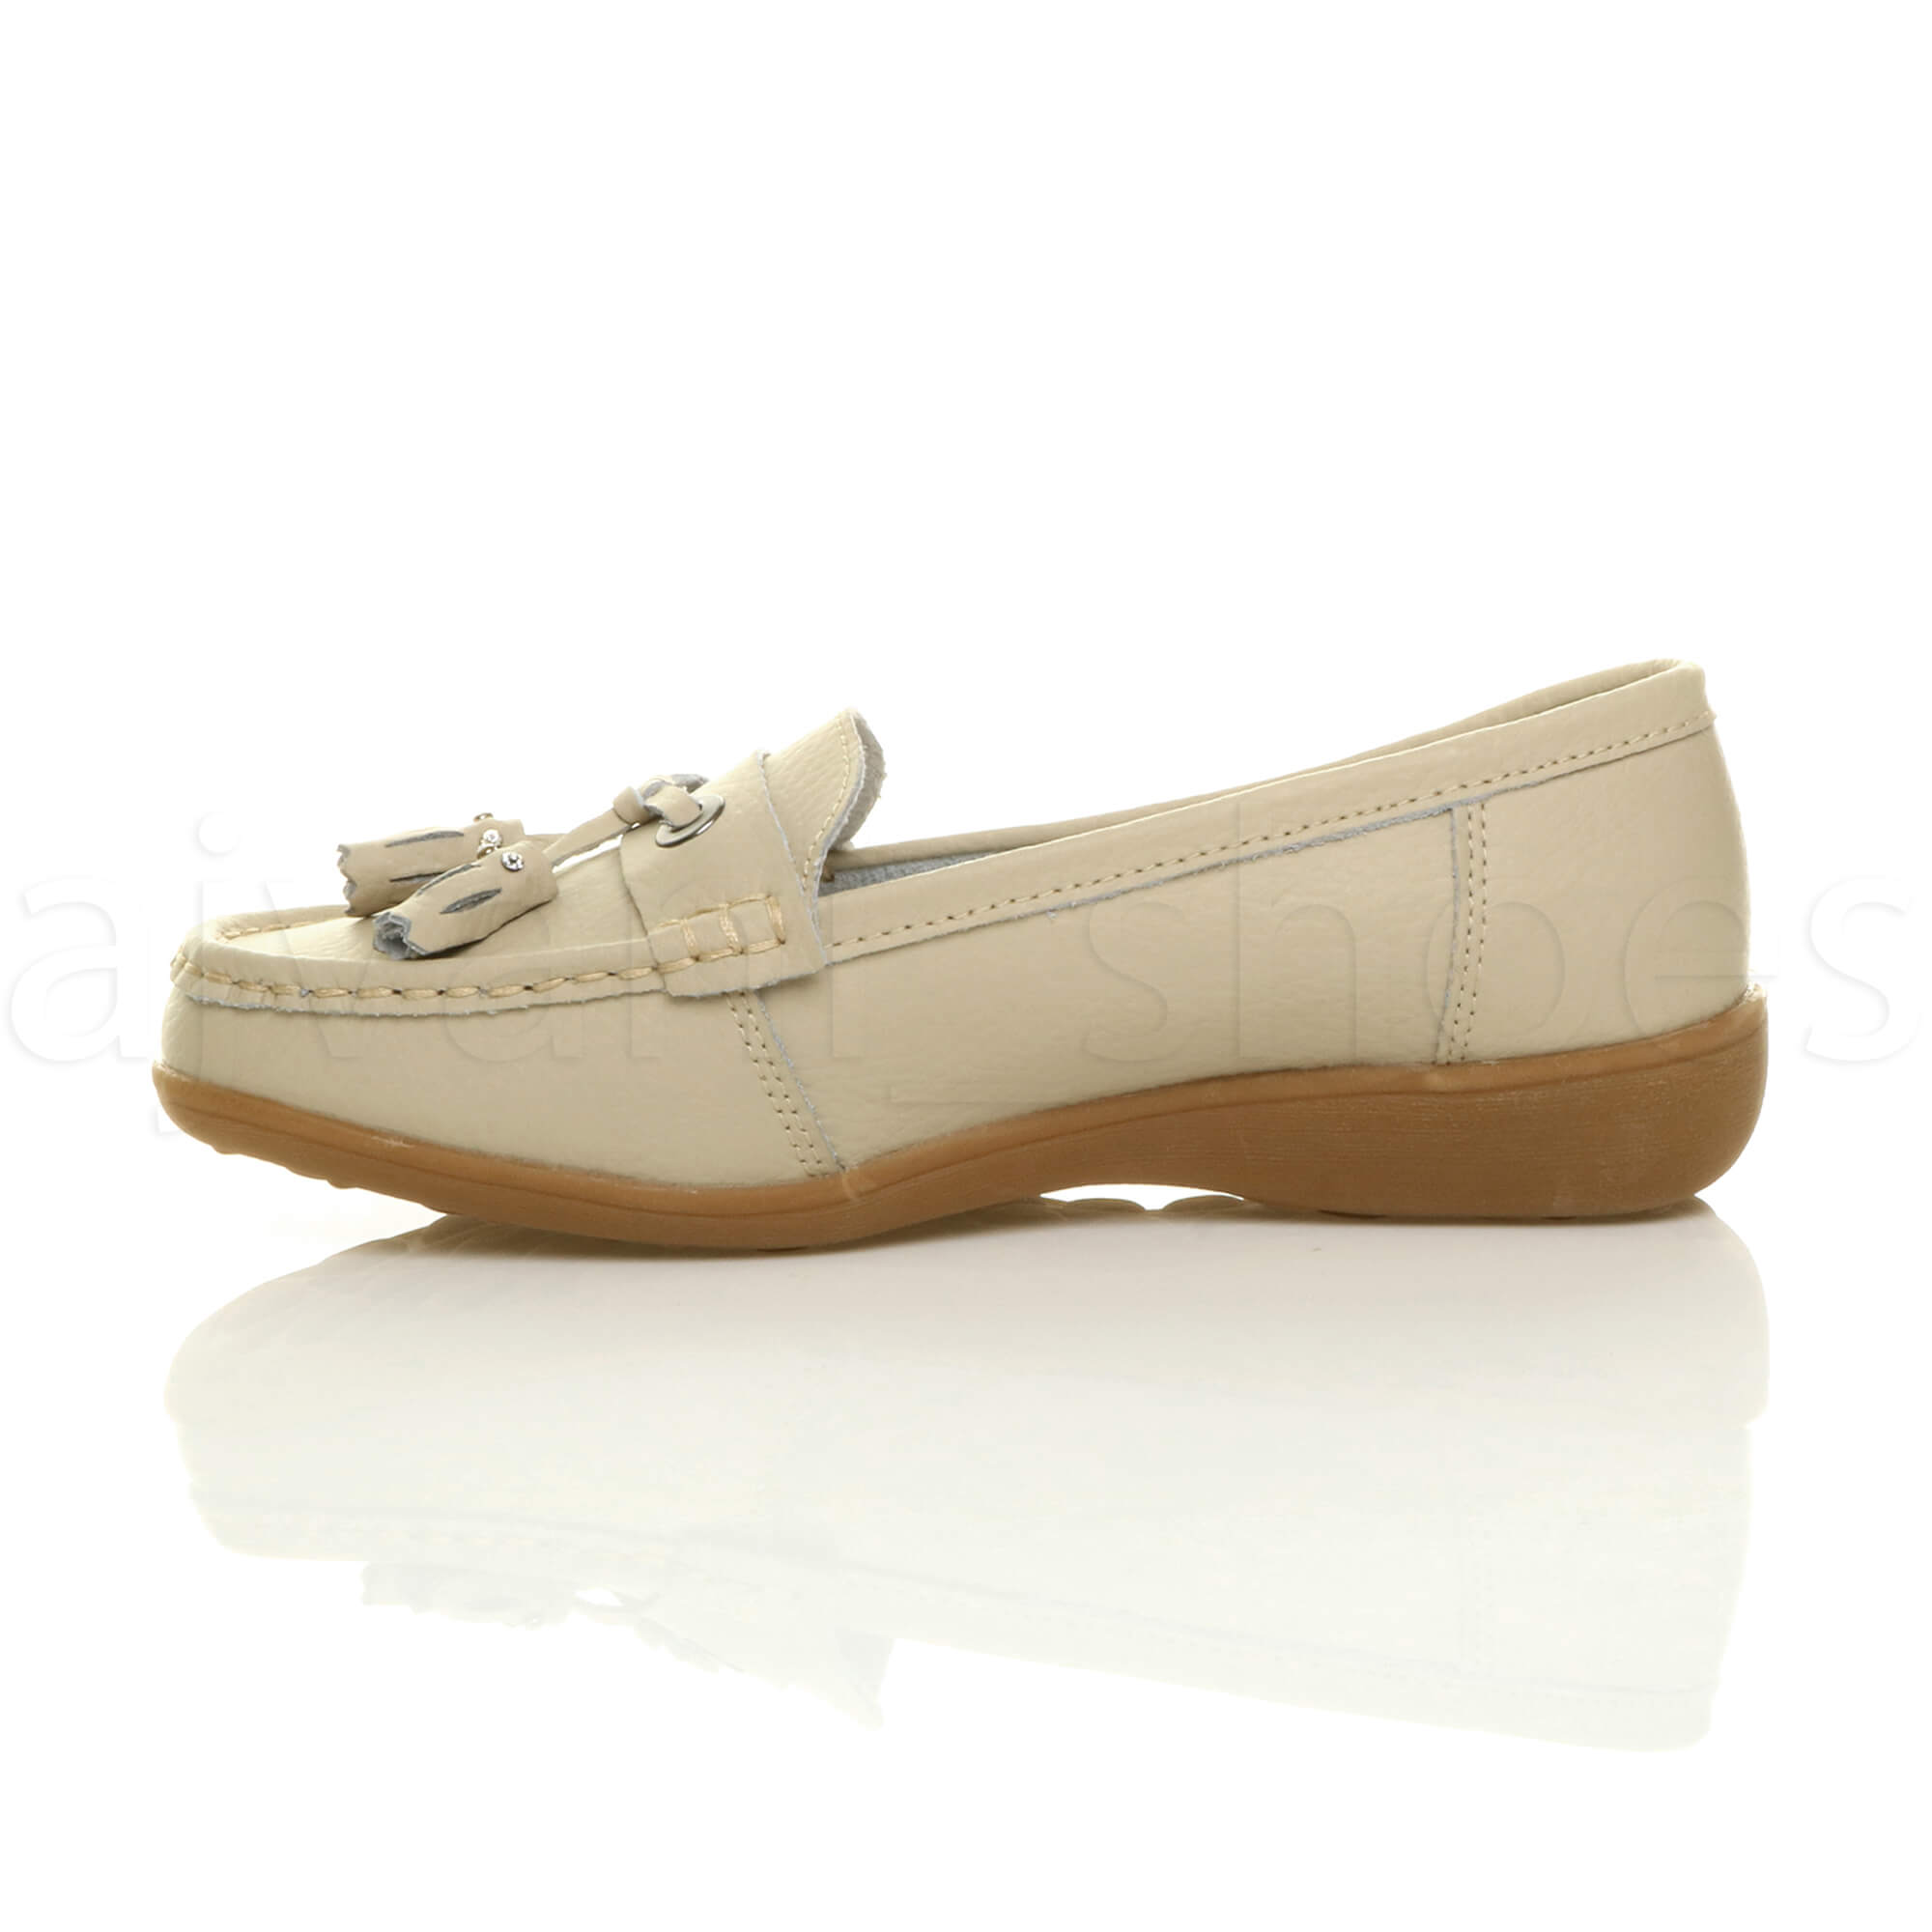 WOMENS-LADIES-LOW-HEEL-WEDGE-LEATHER-TASSEL-LOAFERS-COMFORT-MOCCASINS-SHOES-SIZE thumbnail 4